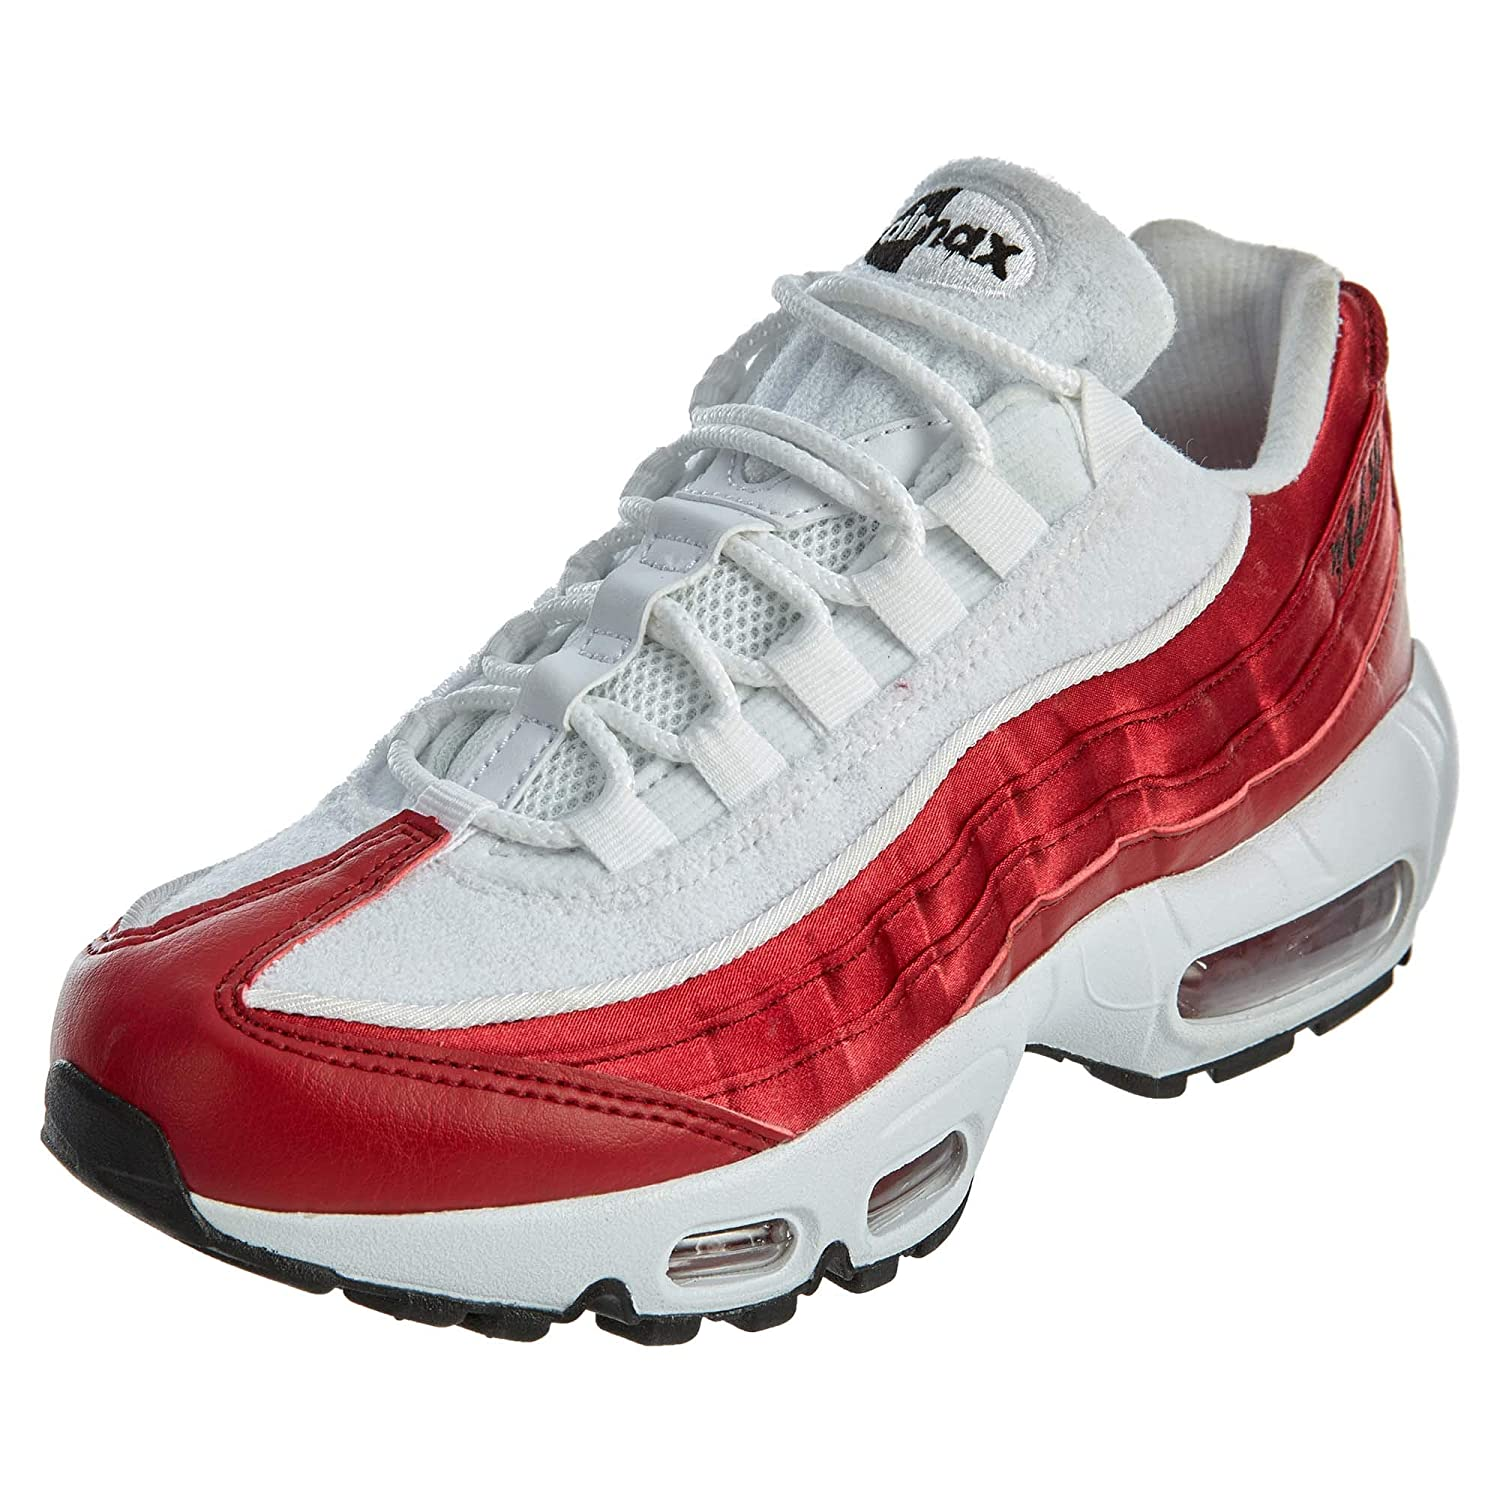 Air Max 95 LX Casual Shoe 6.5 Red